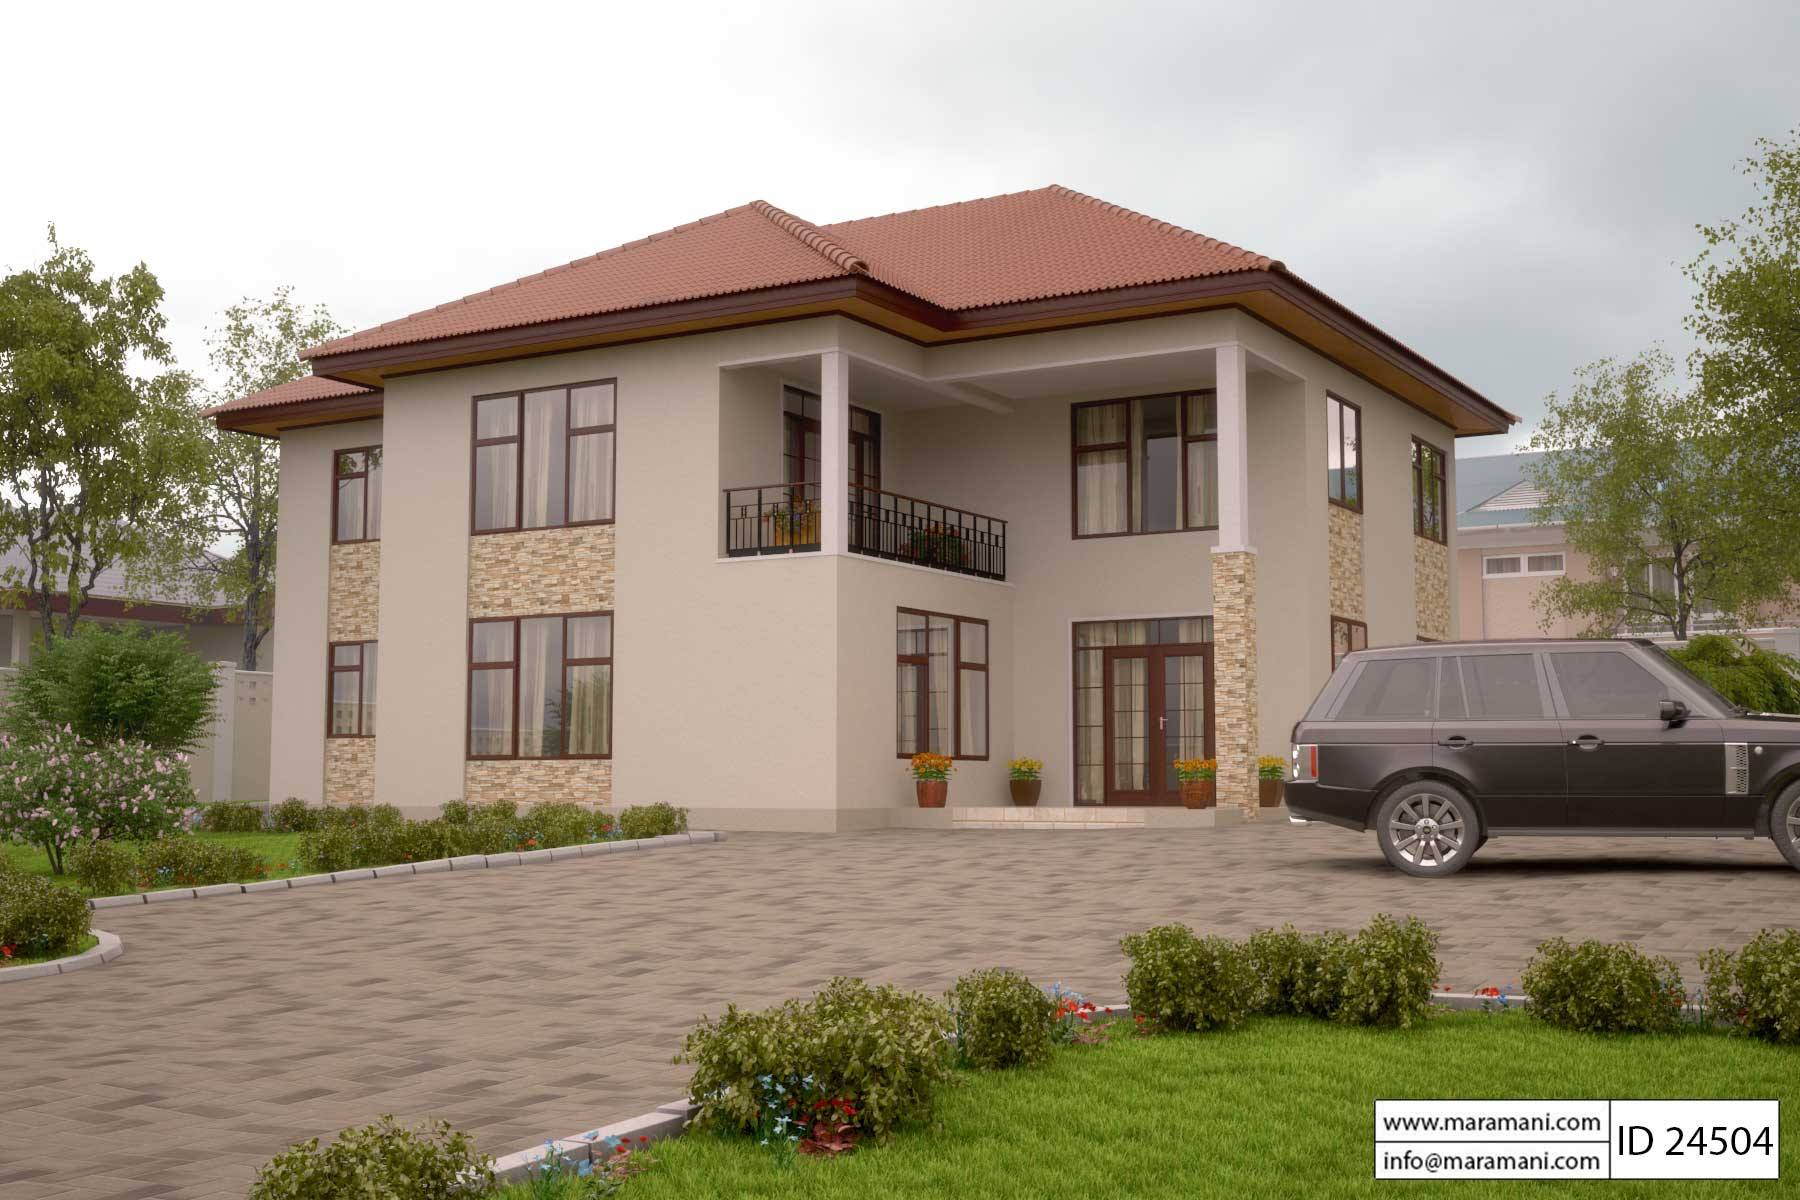 Fullsize Of 4 Bedroom House